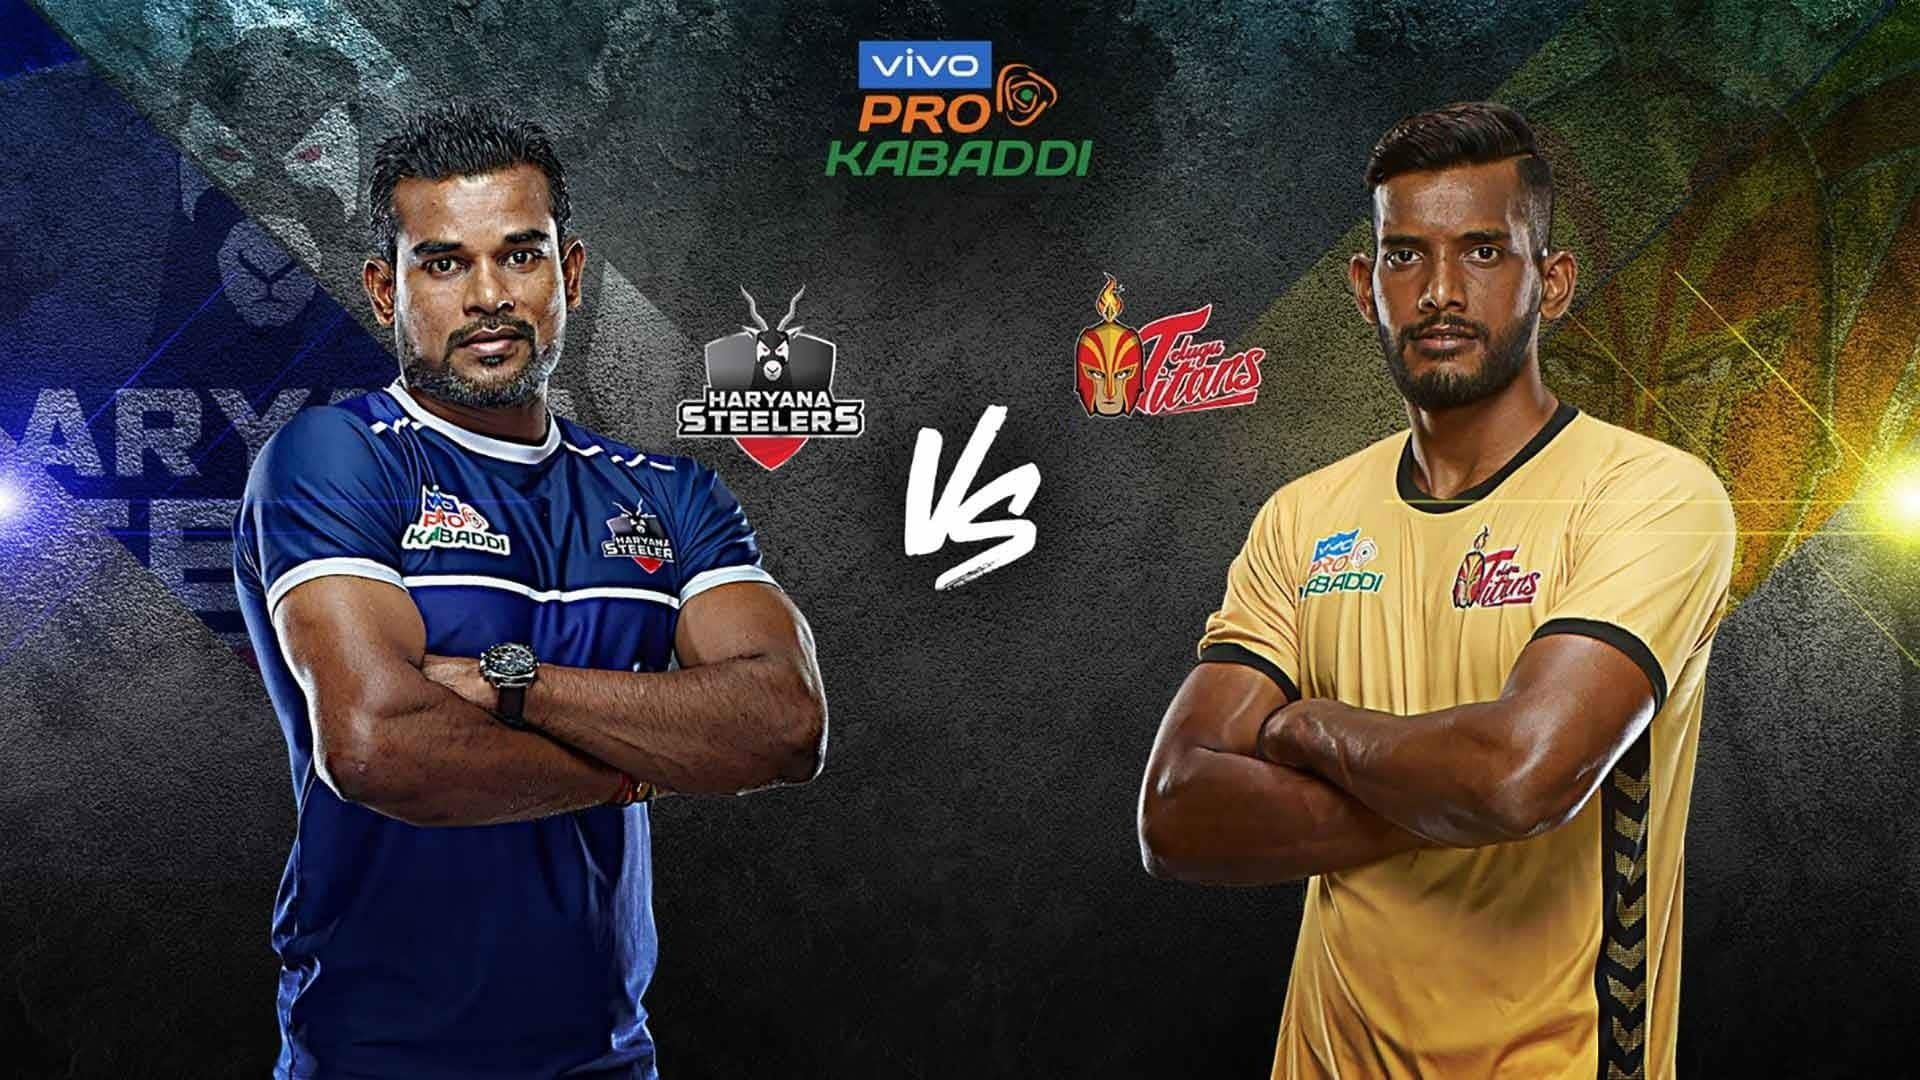 Haryana Steelers vs Telugu Titans Dream11 Team - Check My Dream11 Team, Best players list of Pro Kabaddi League 2019, Haryana Steelers vs Telugu Titans Dream11 Team Player List, Haryana Steelers Dream 11 Team Player List, Telugu Titans Dream11 Team Player List, Dream11 Guru Tips, Online Tips And Predictions - Pro Kabaddi 2019, Online Kabaddi Tips - PKL 2019, Online Kabaddi Tips and Predictions - Pro Kabaddi League.